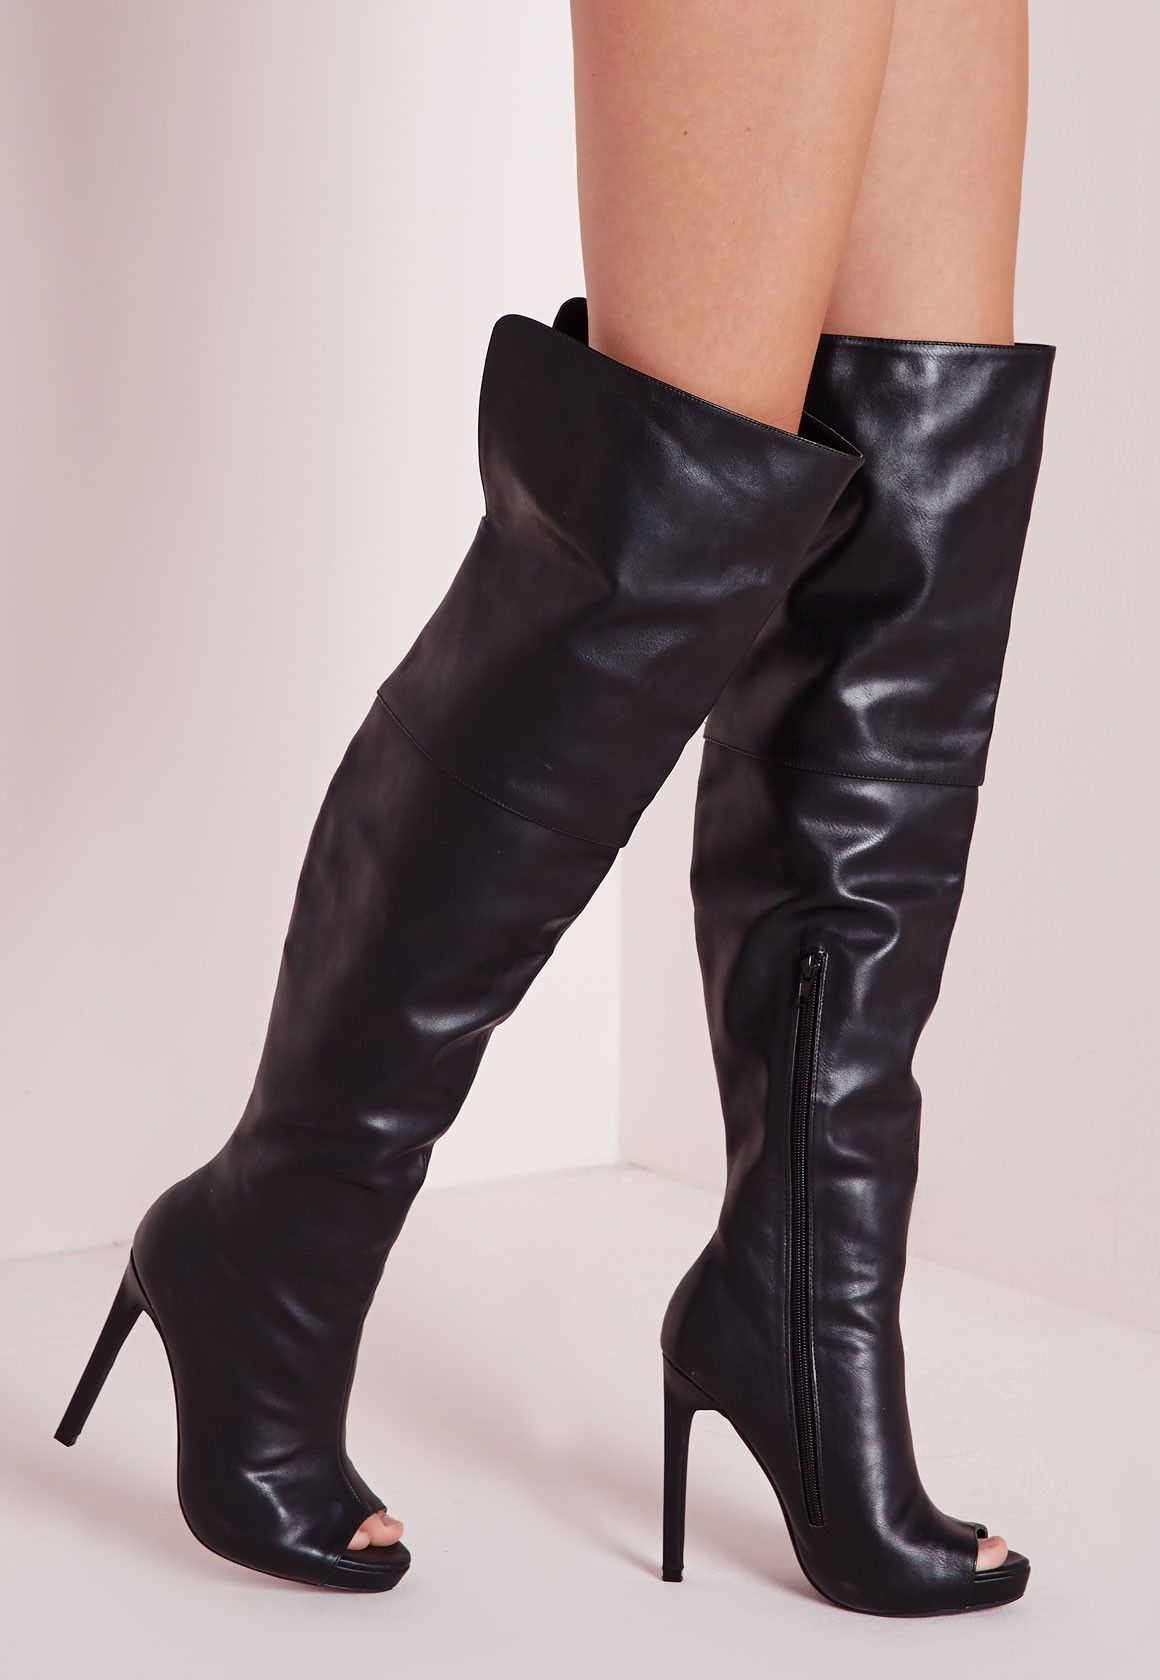 a9025081fe0 Missguided - Faux Leather Thigh High Peep Toe Boots Black ...